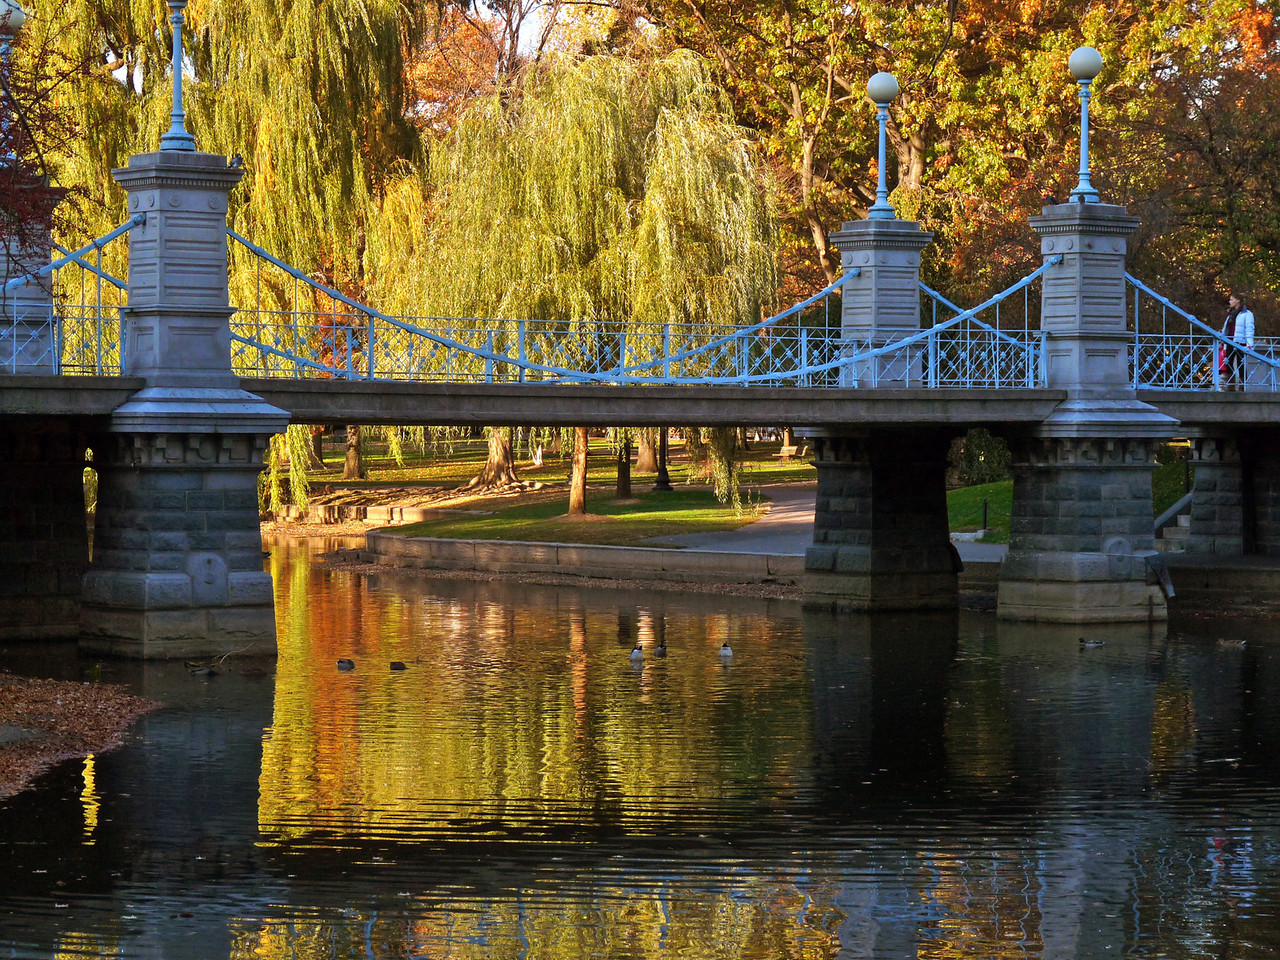 Boston Public Gardens in the fall.